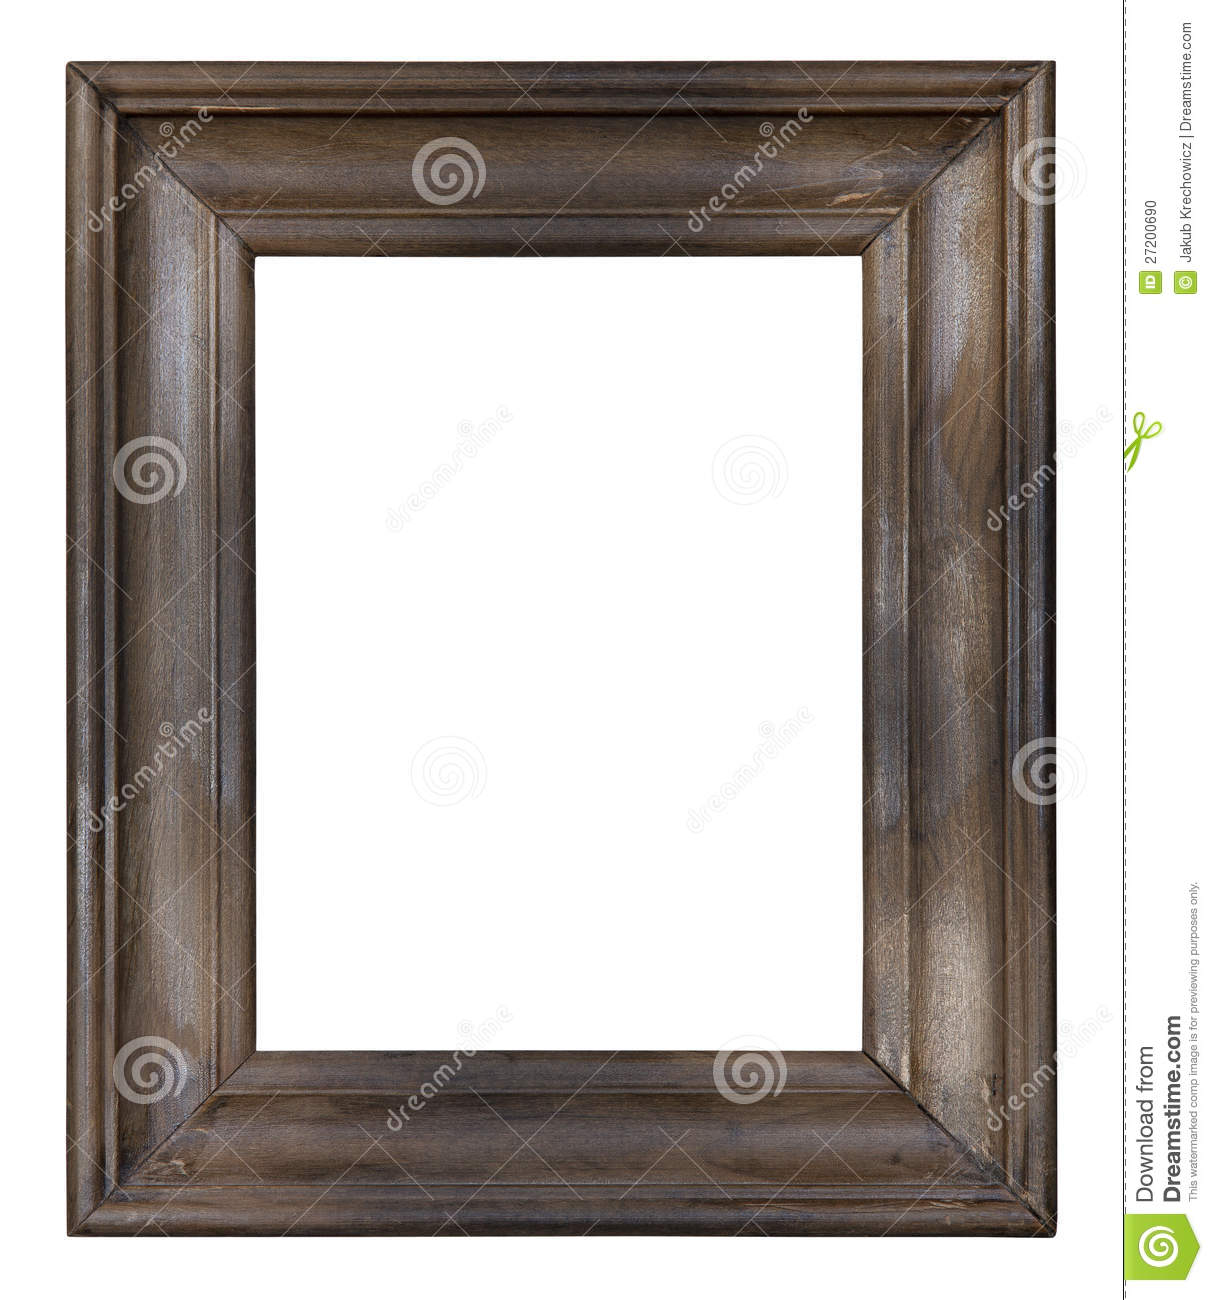 Old wooden picture frame stock photo. Image of background ...